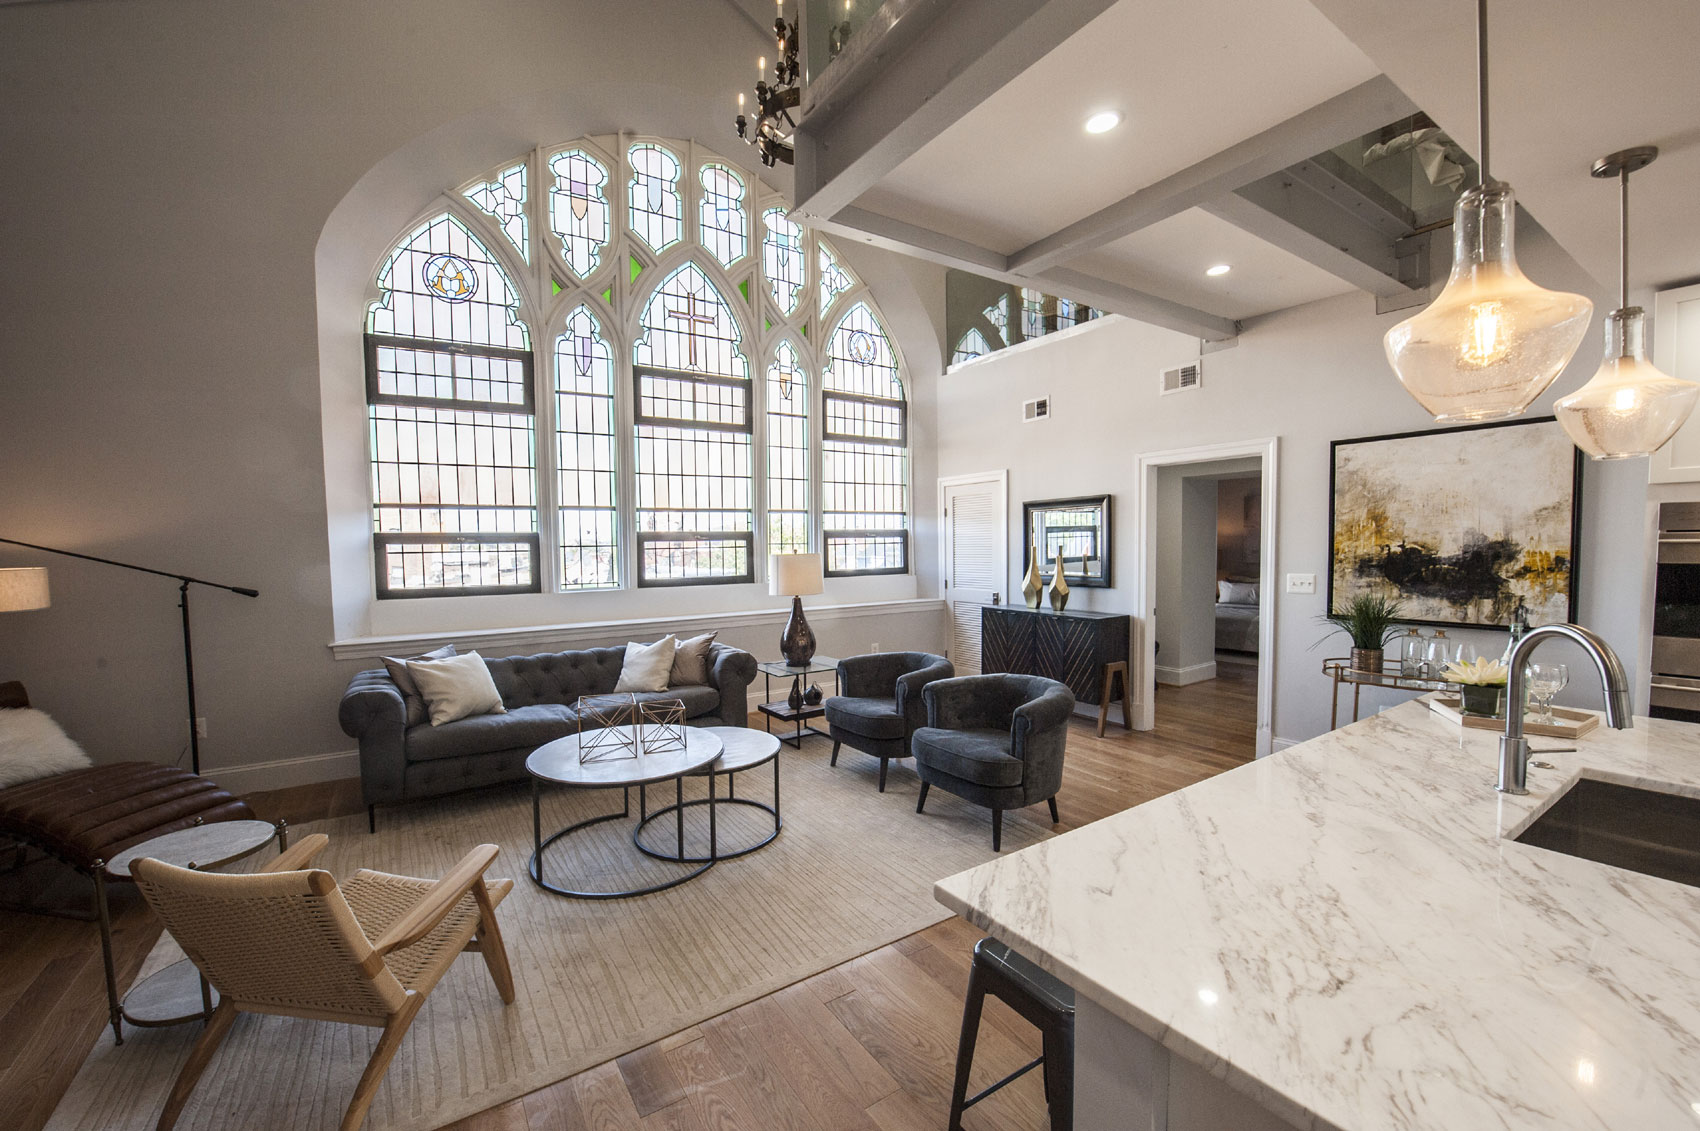 This one-of-a-kind penthouse is the jewel in the crown of The Sanctuary, a collection of 30 distinctive residences housed in a former 19th-century Gothic-Revival church.